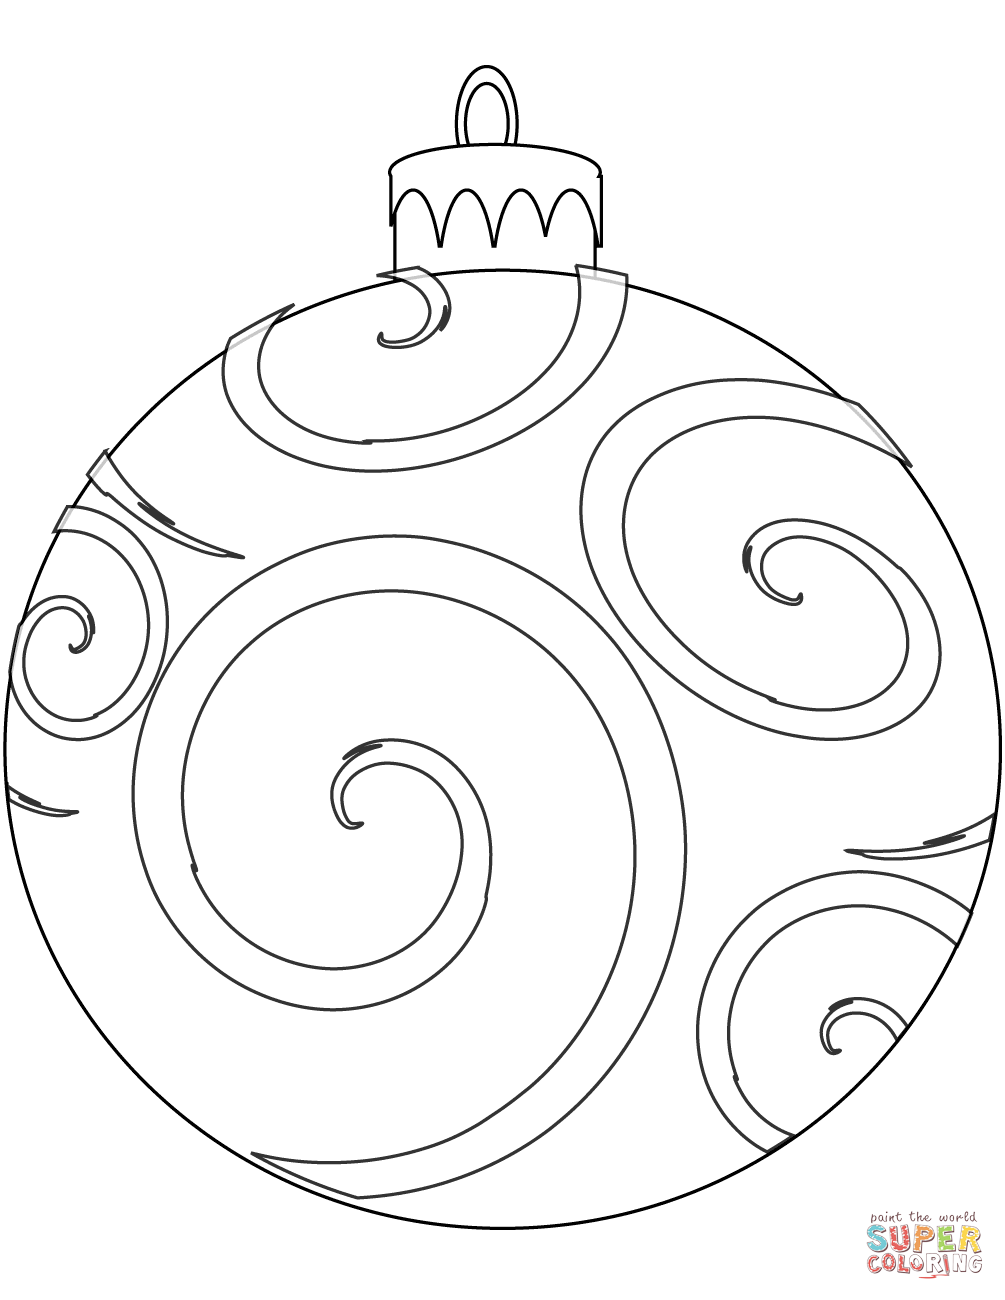 1005x1300 Holiday Ornament Coloring Page Free Printable Coloring Pages